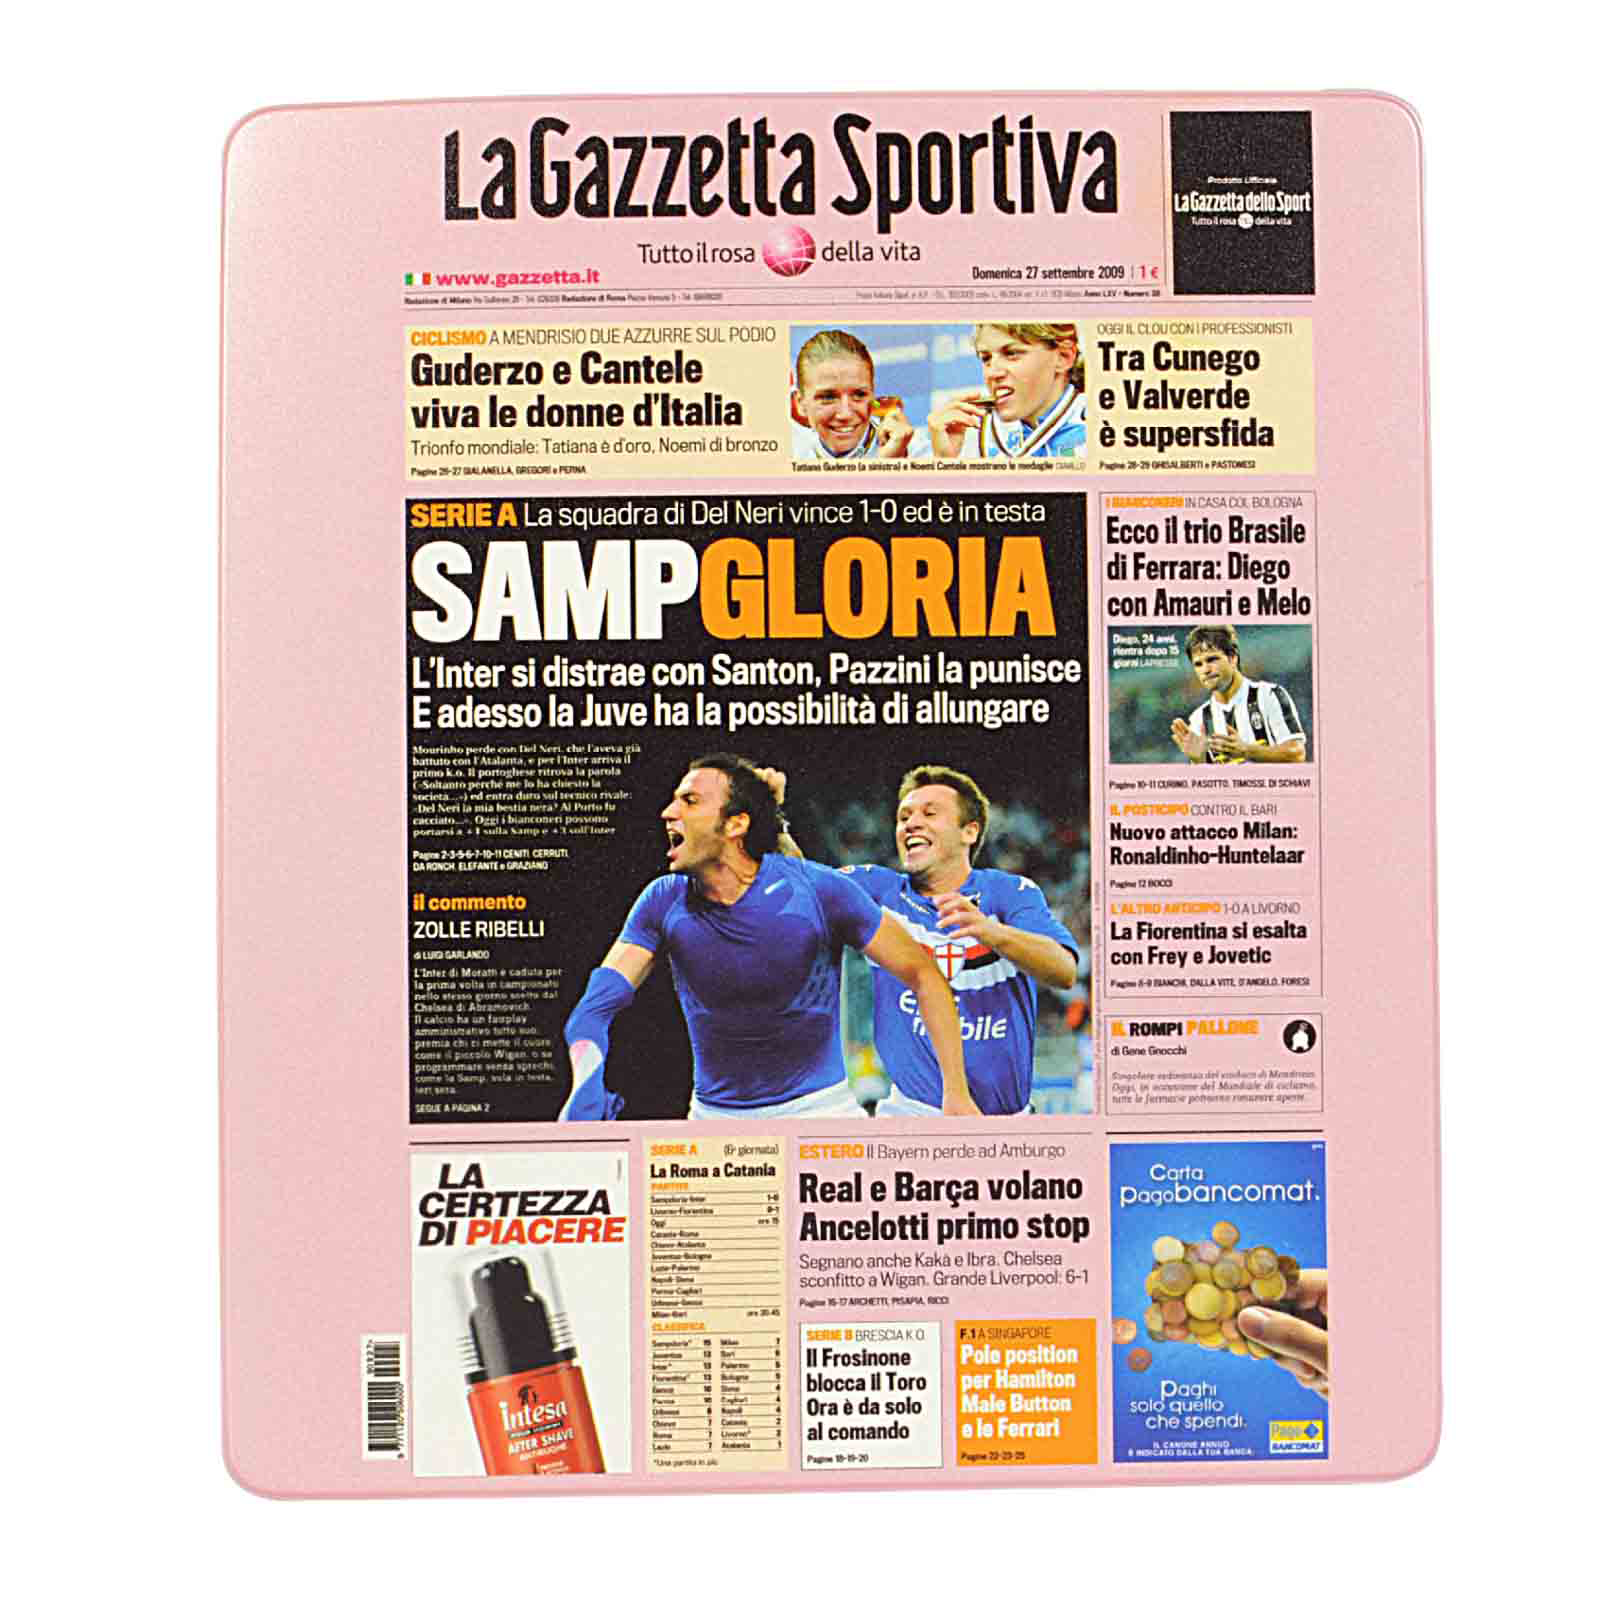 Mousepad Sampdoria - Cover iPhone/iPad